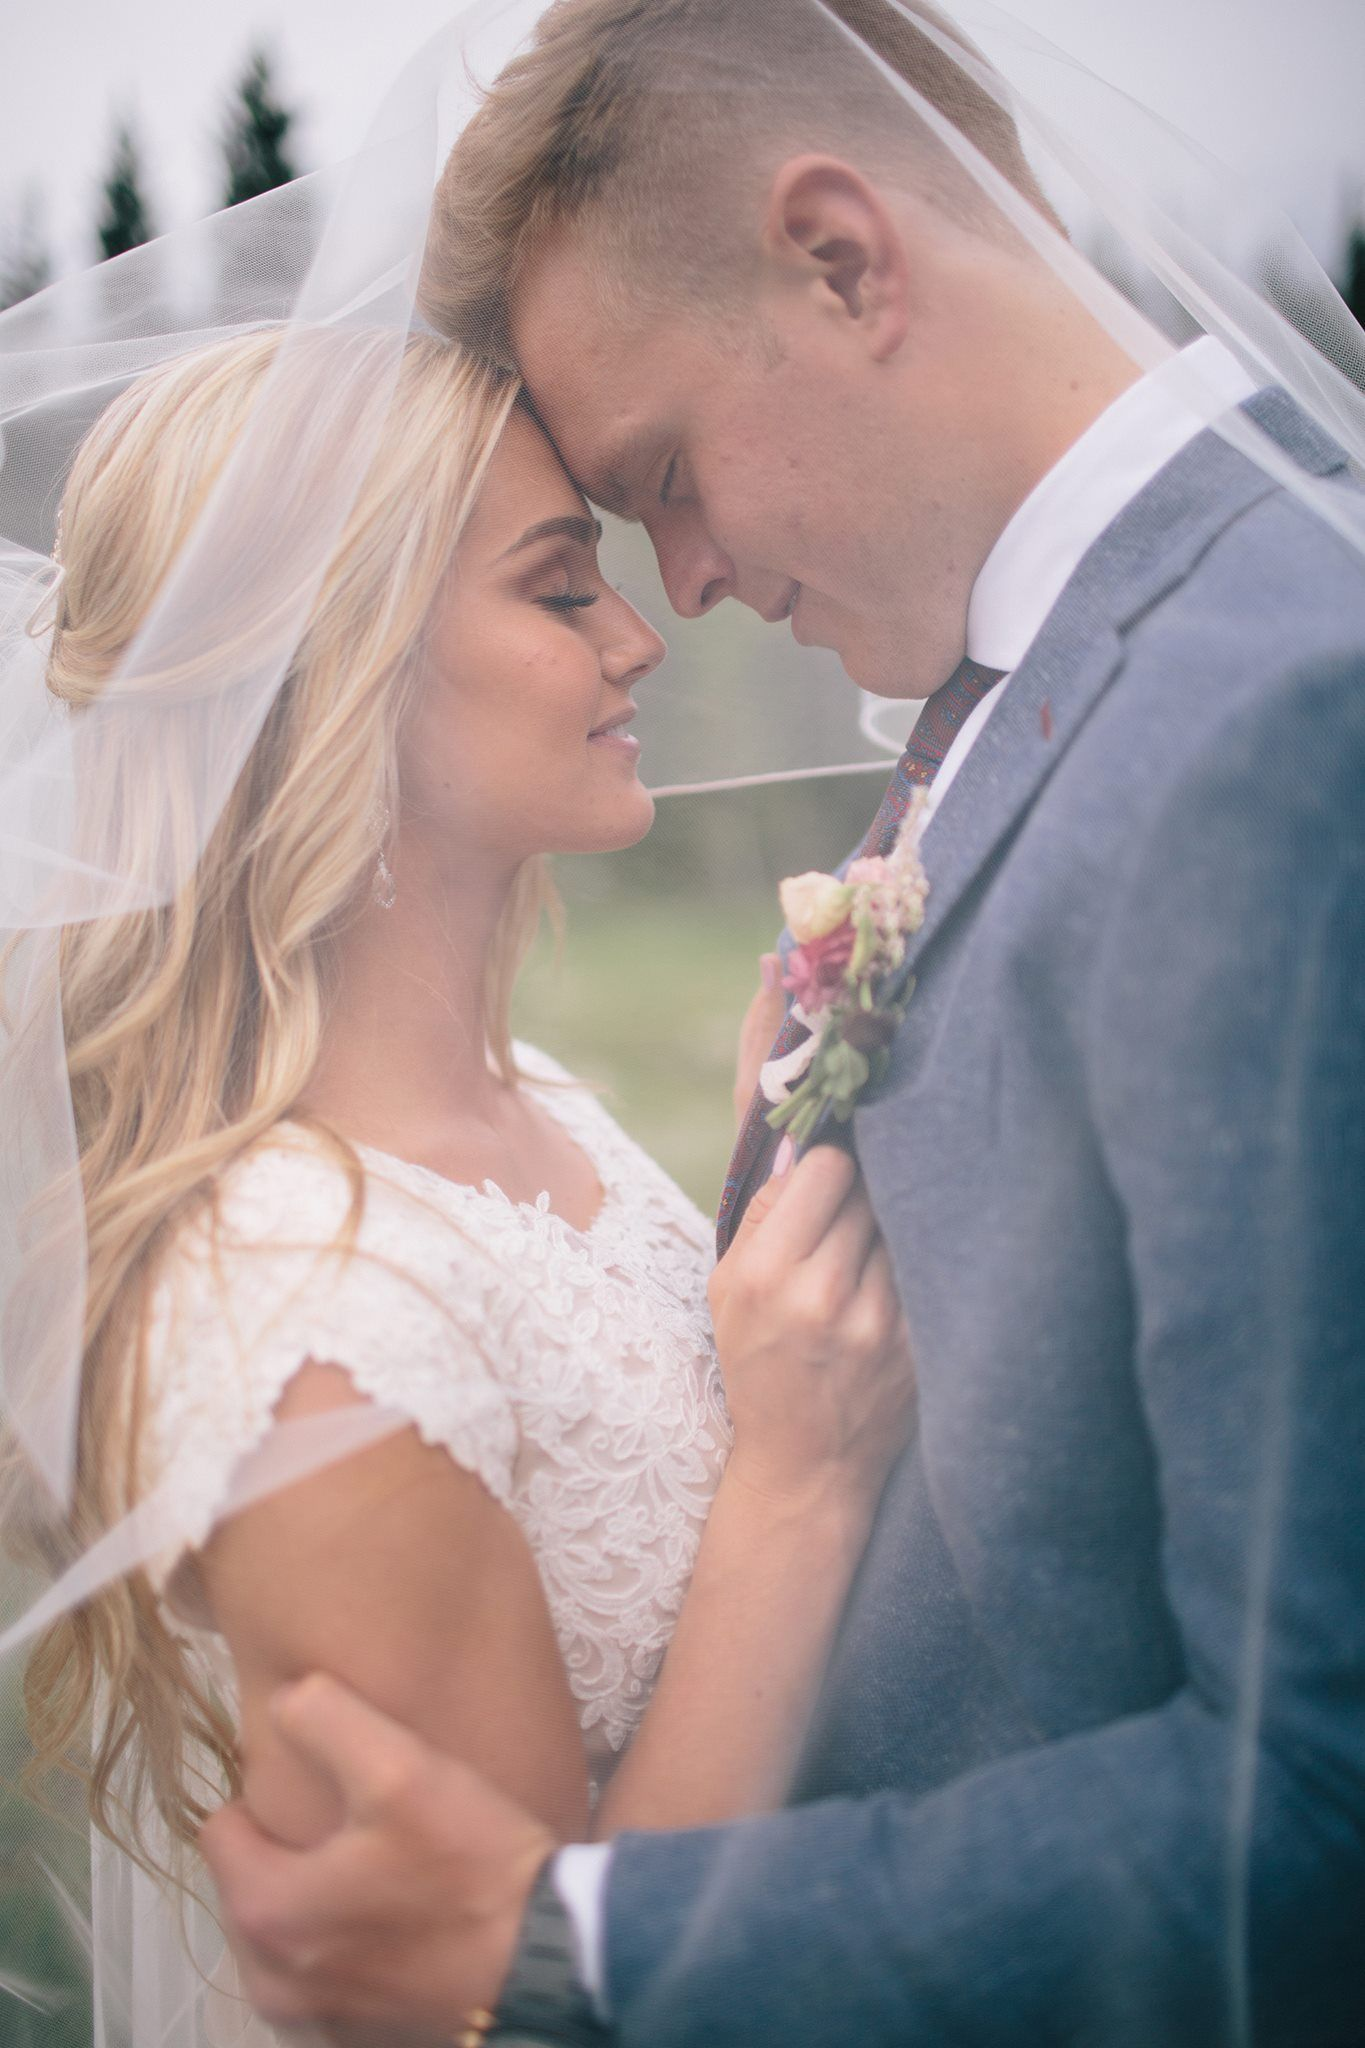 NYC Wedding and Event Planner Specializing in Unique